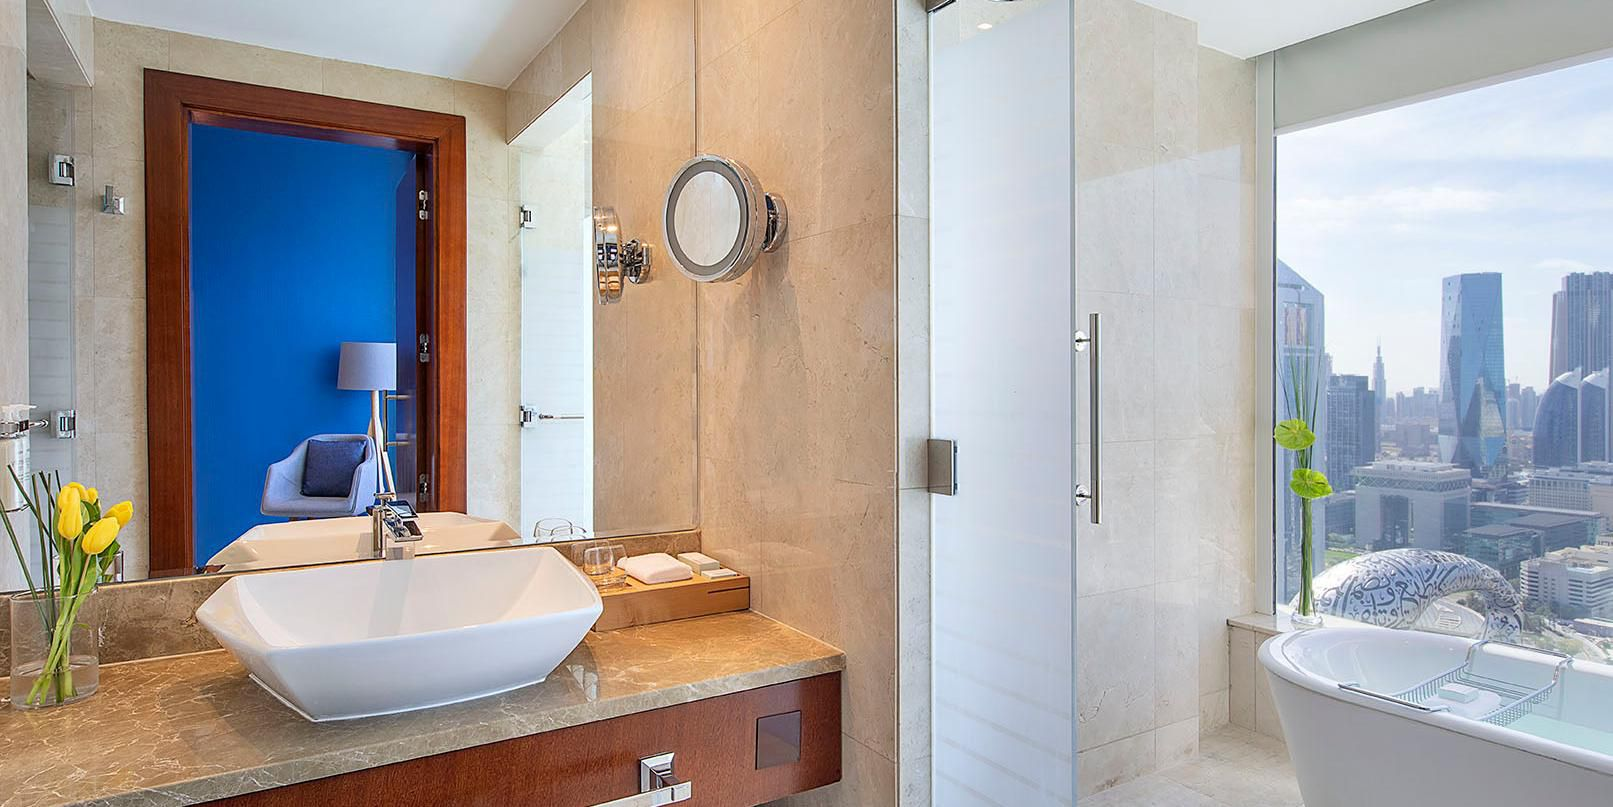 Superior Room bathroom with Sheikh Zayed Road view